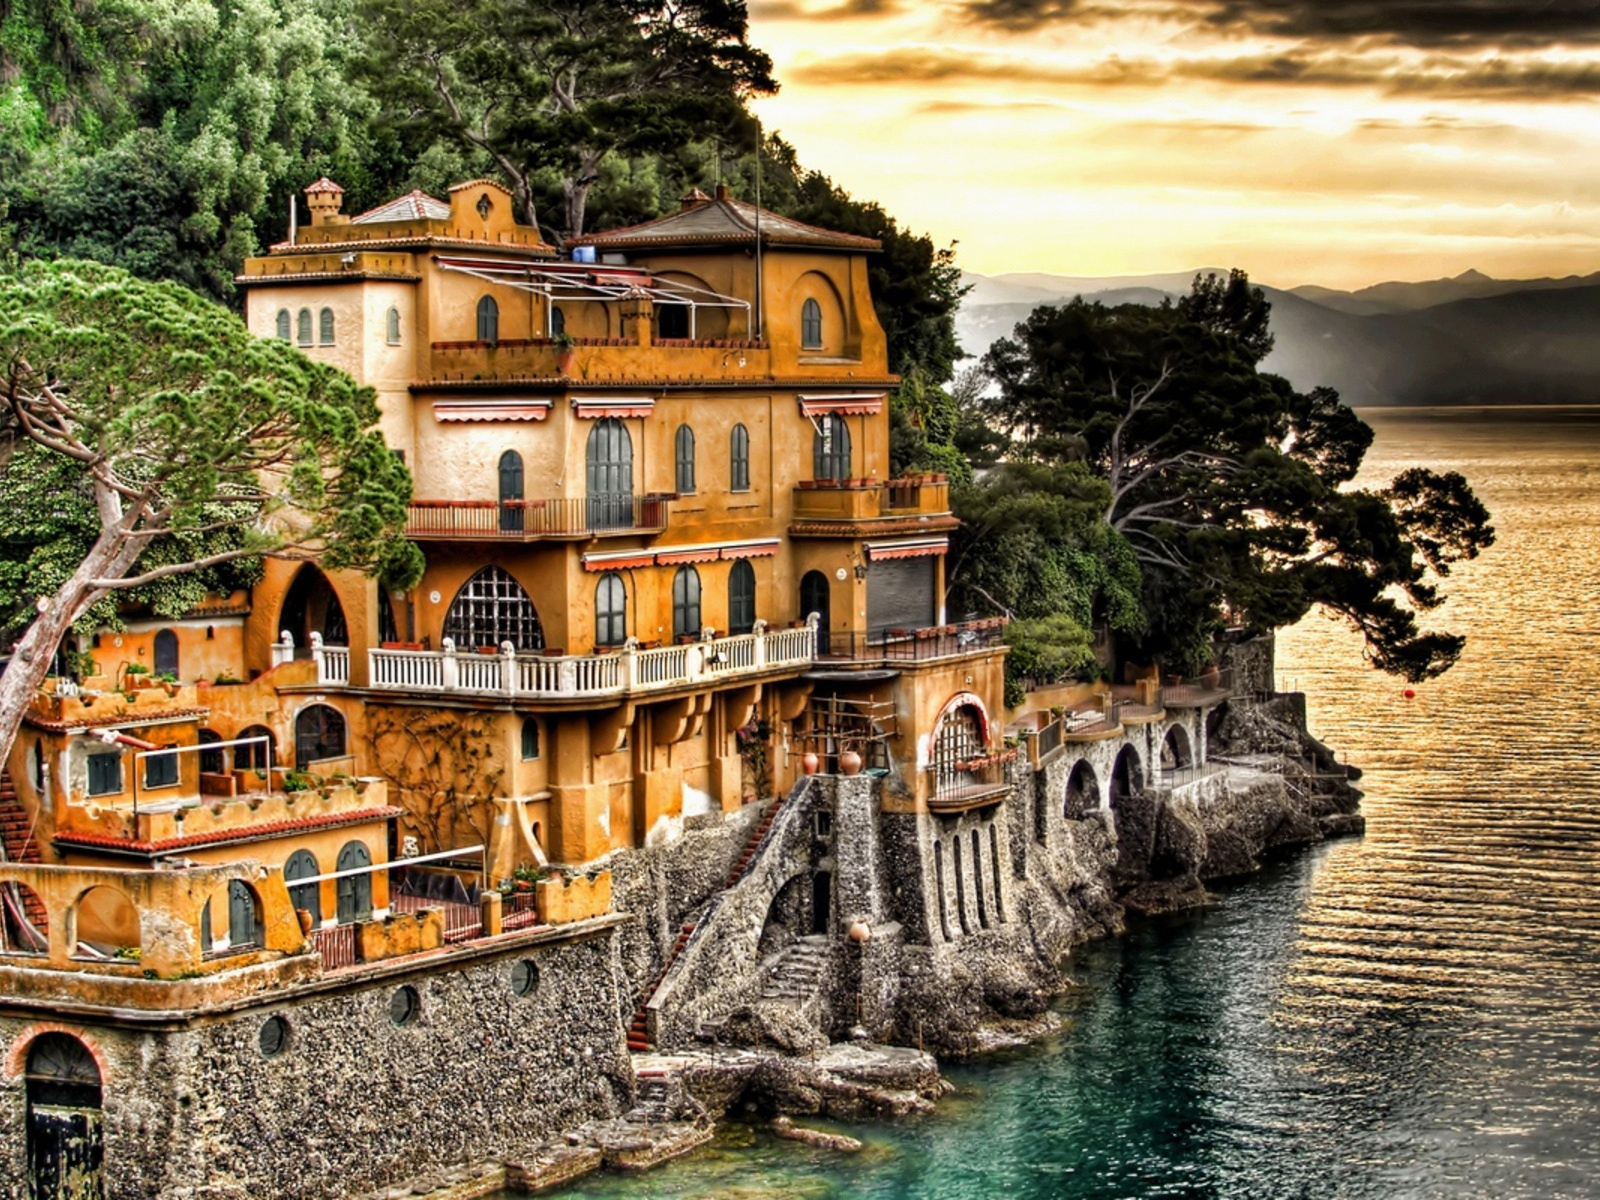 Old house in Genoa Italy wallpapers and images   wallpapers pictures 1600x1200